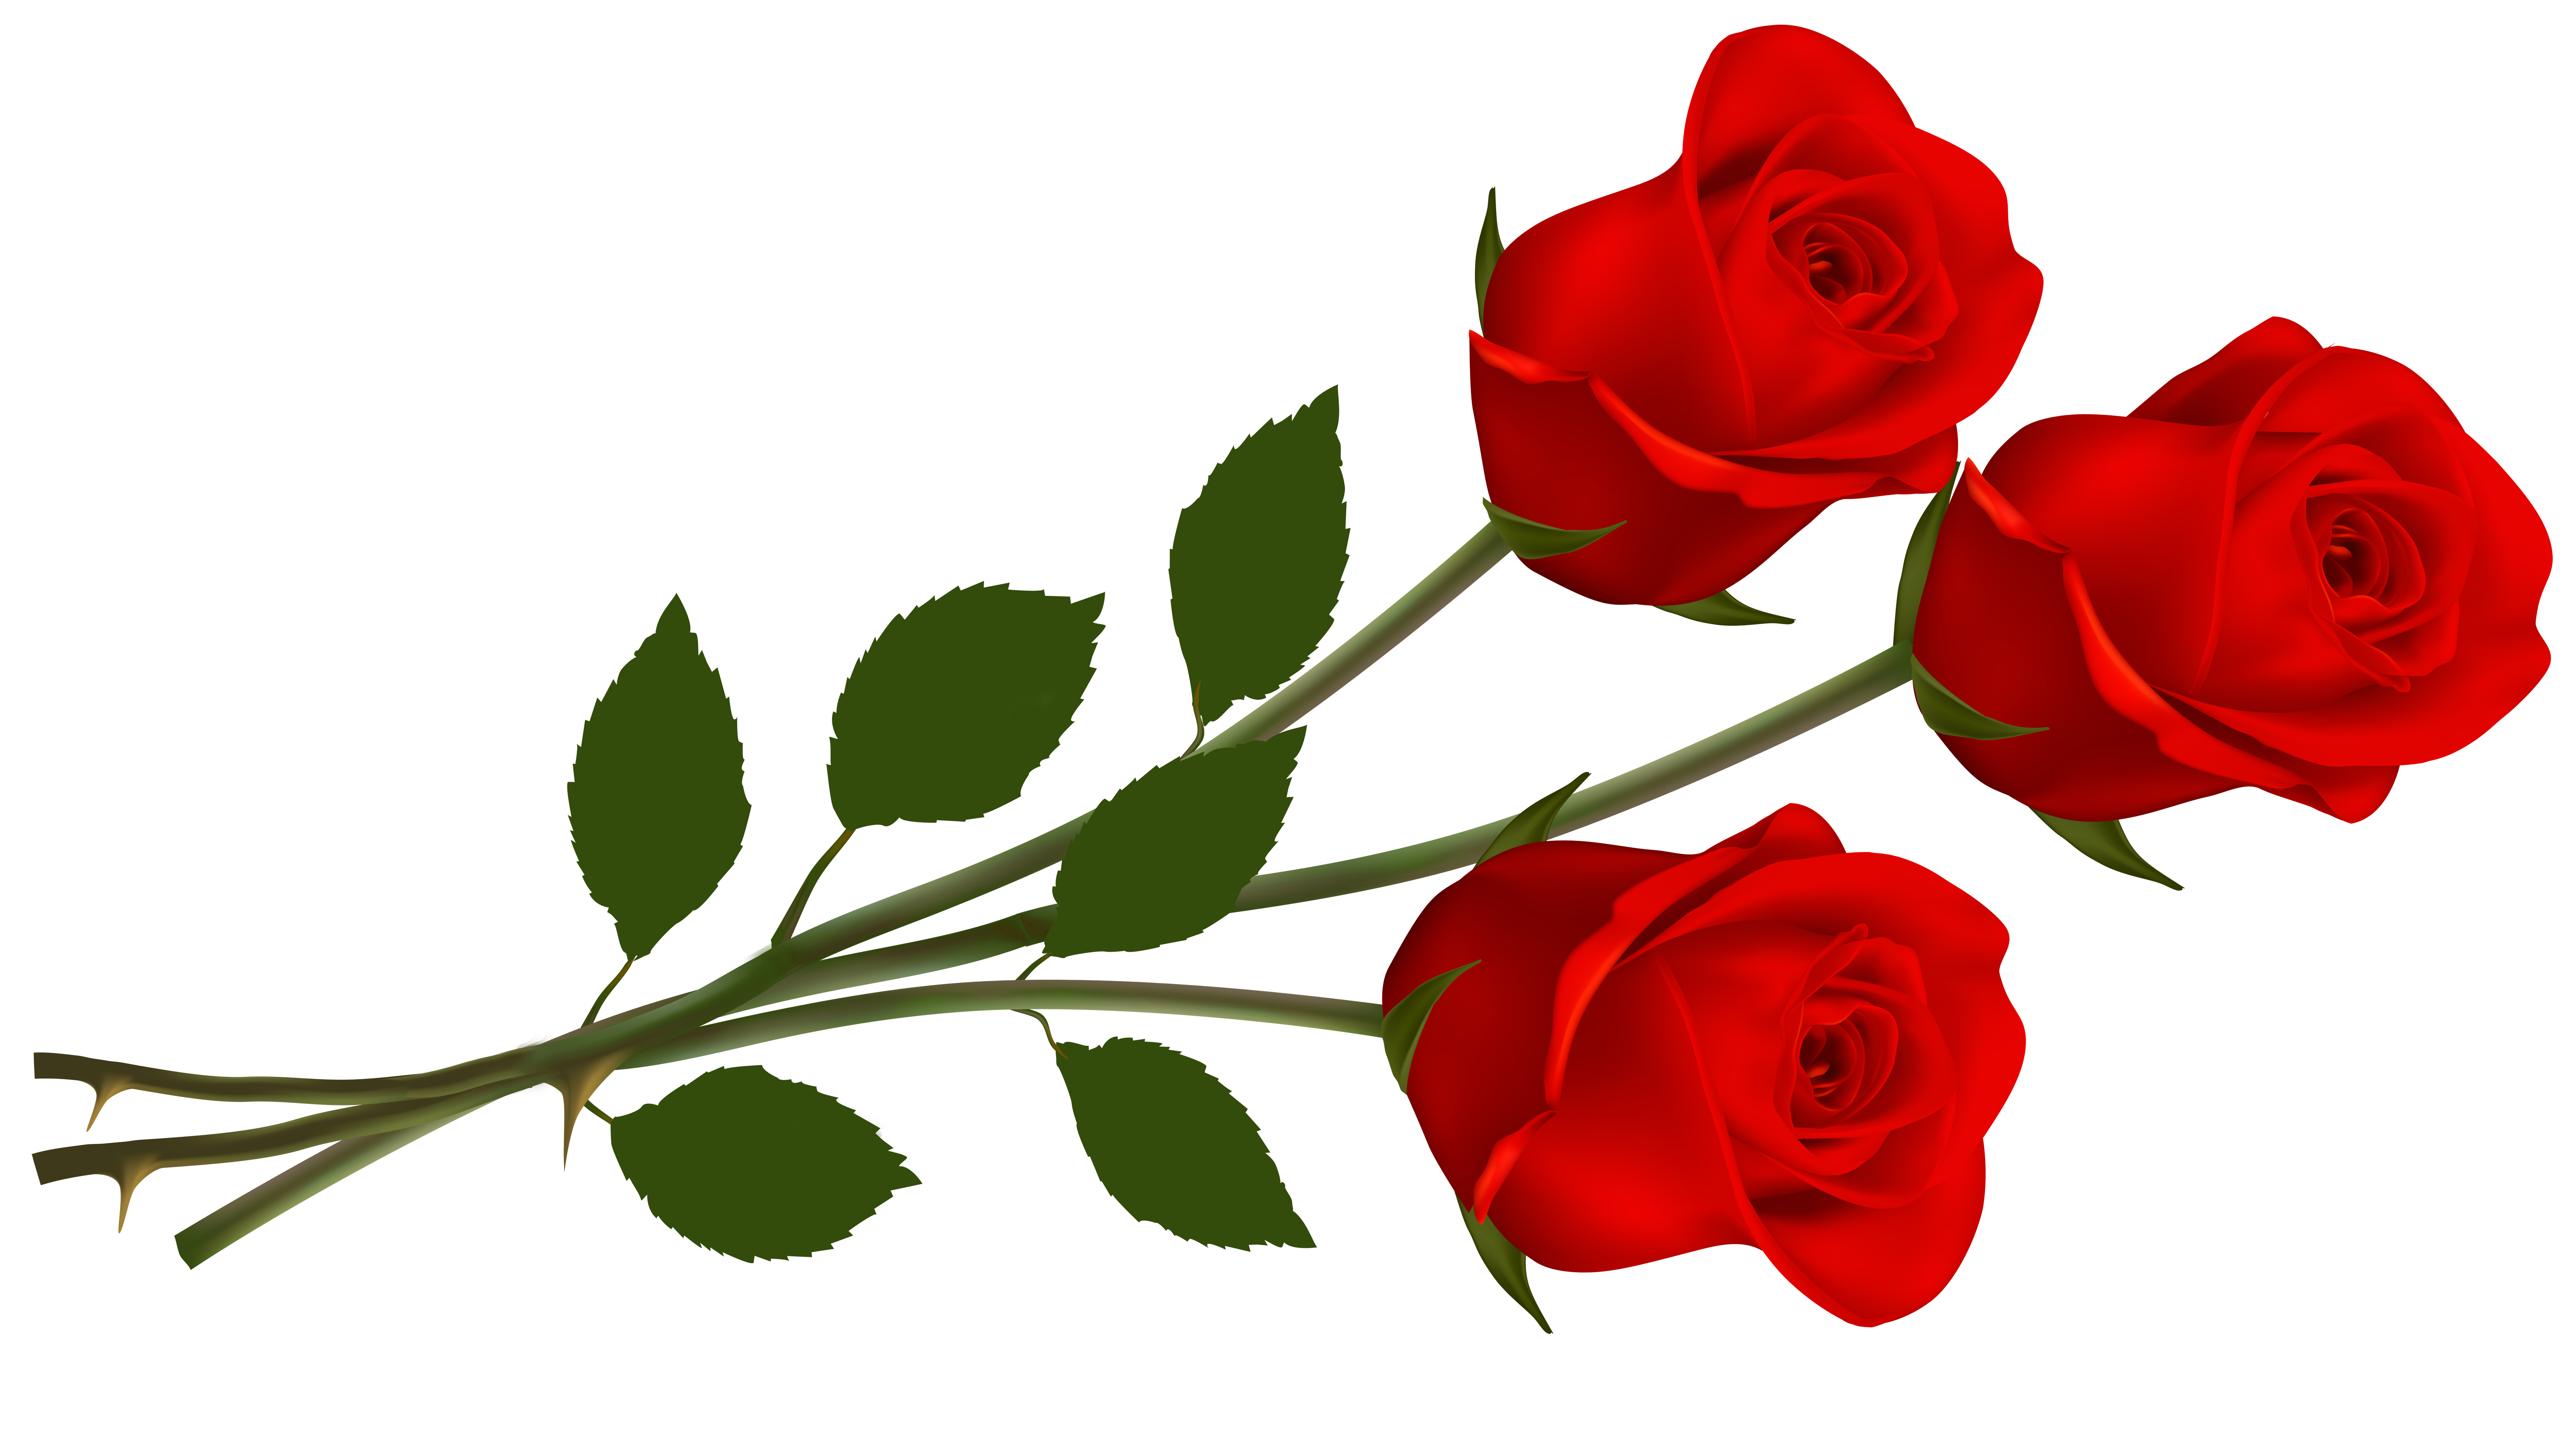 picture Single rose clipart. Clip art red roses